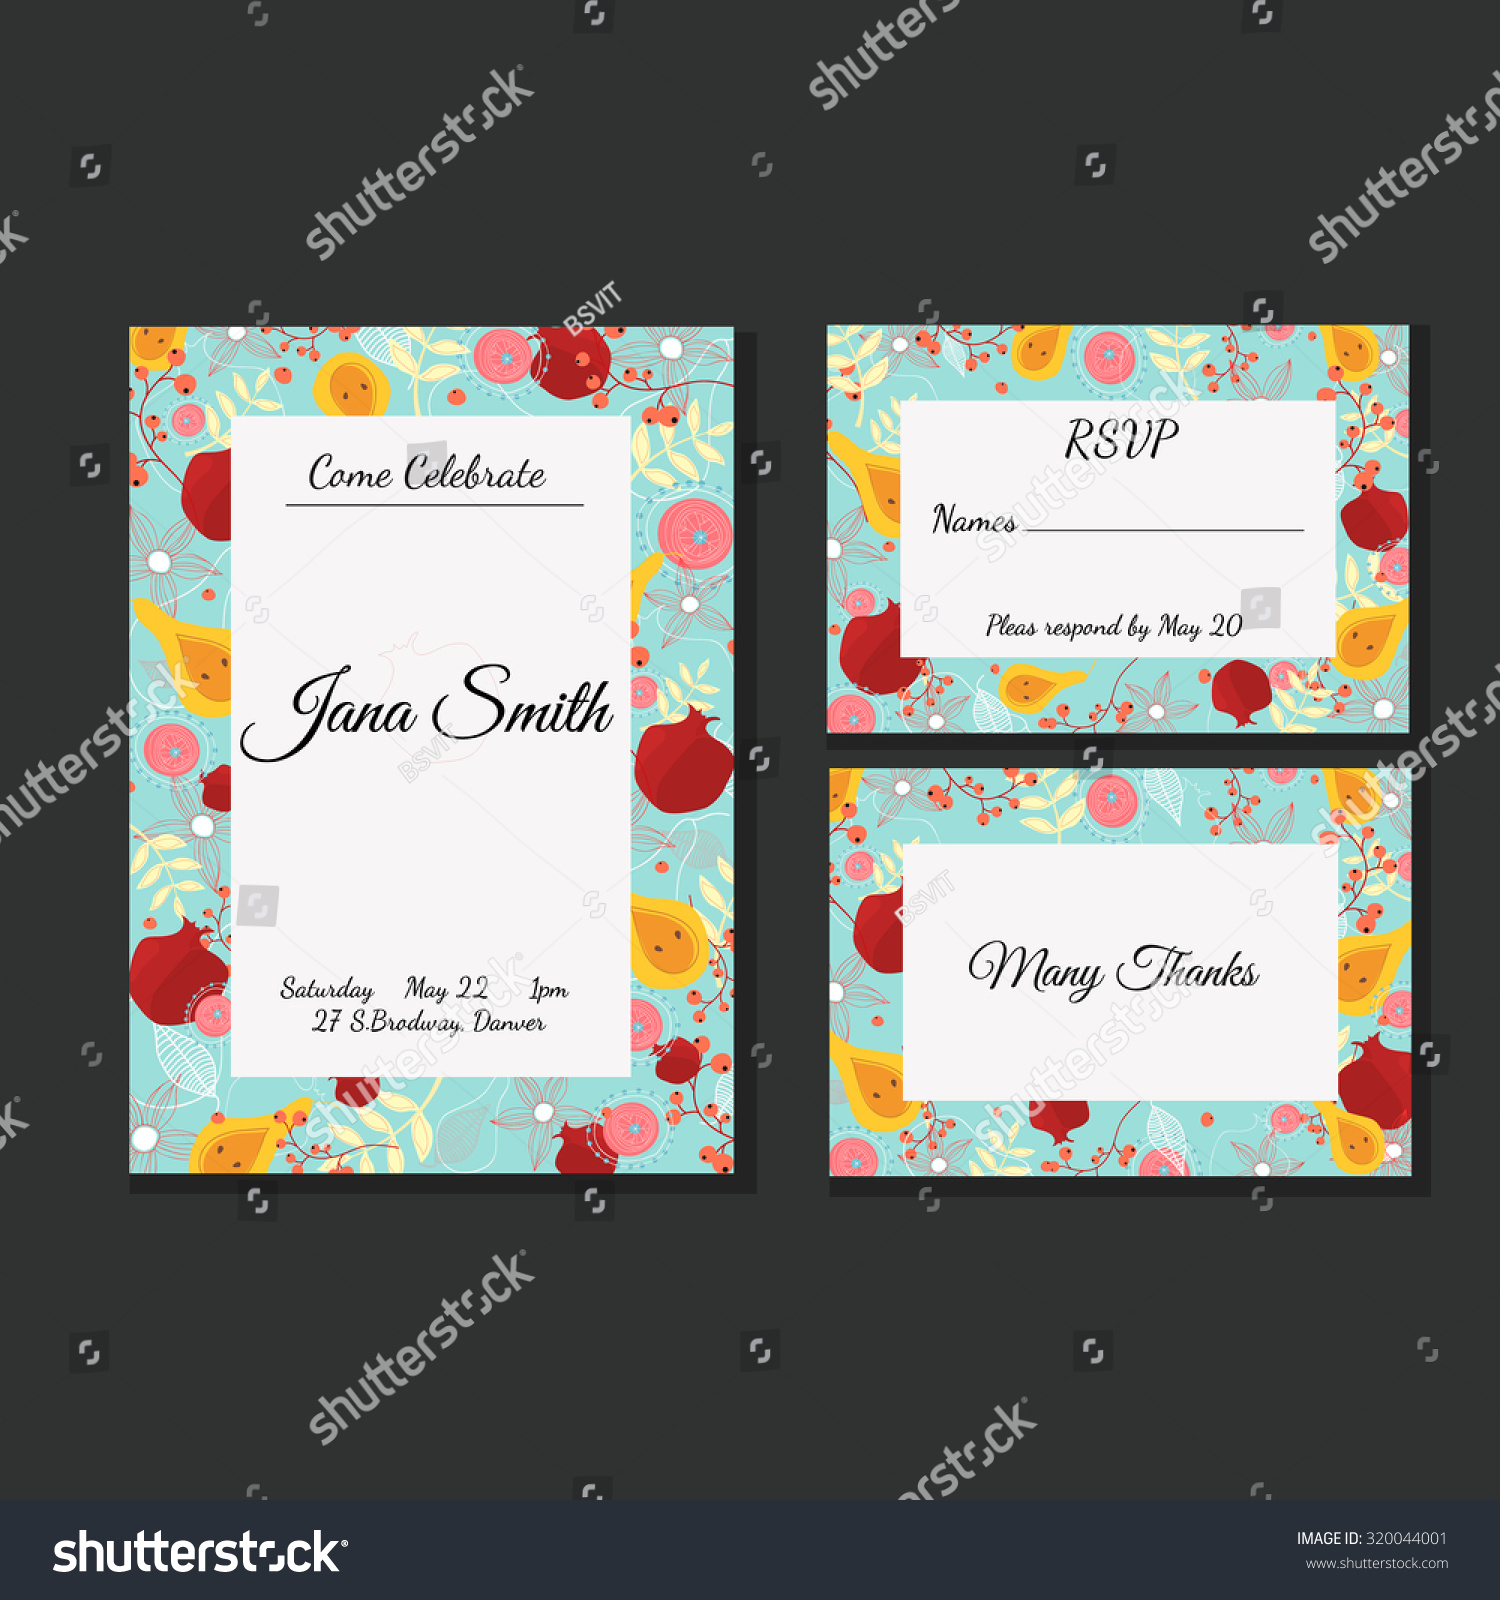 Set Of Birthday Party Invitations With Flowerpomegranate And PearInvitation Or Save The Date RSVP Thank You Card For Design Vector Isolated